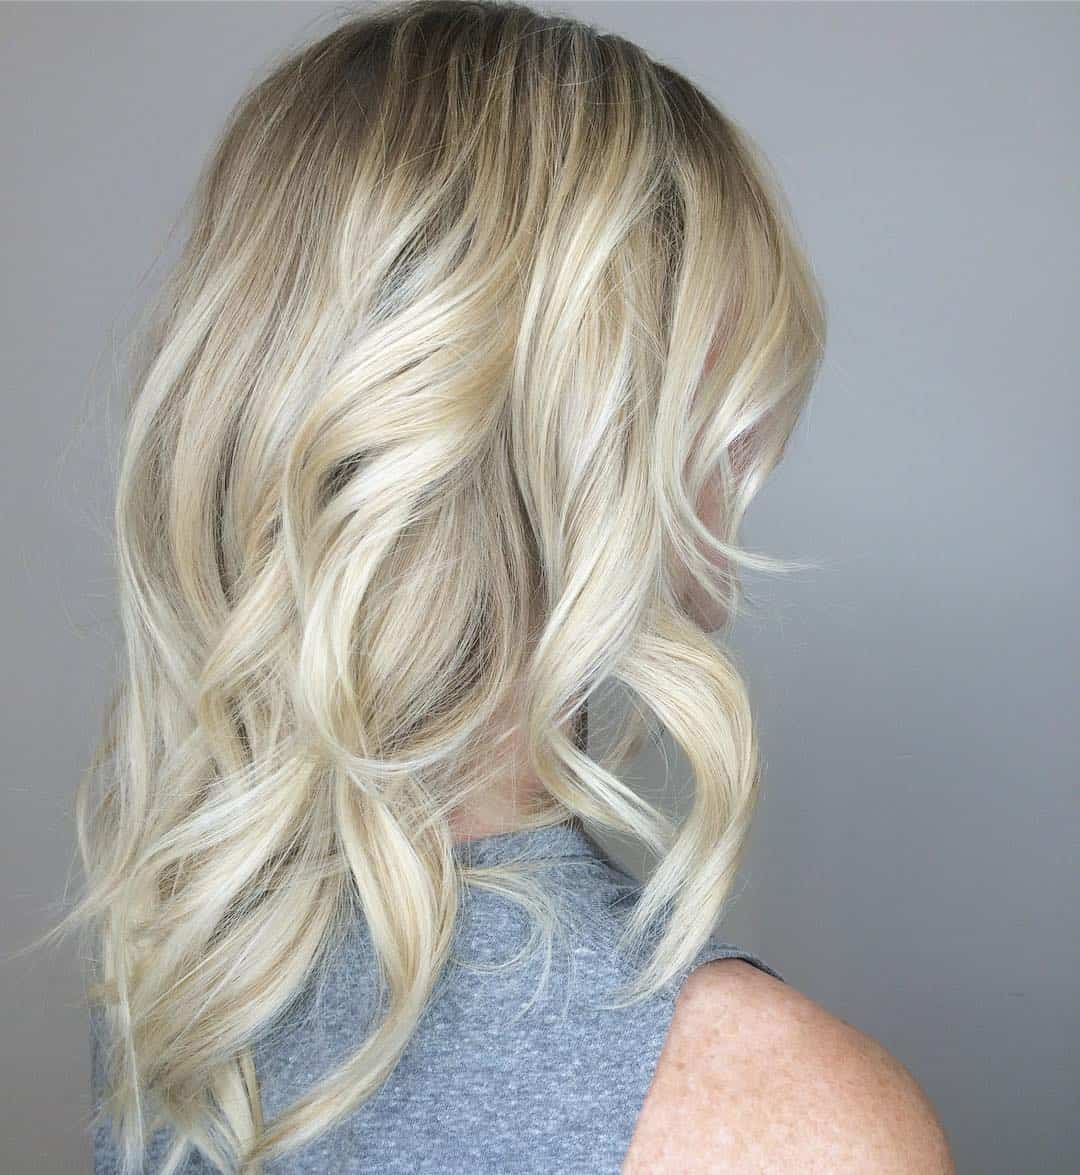 blonde hair color by zinke hair studio in Boulder, CO